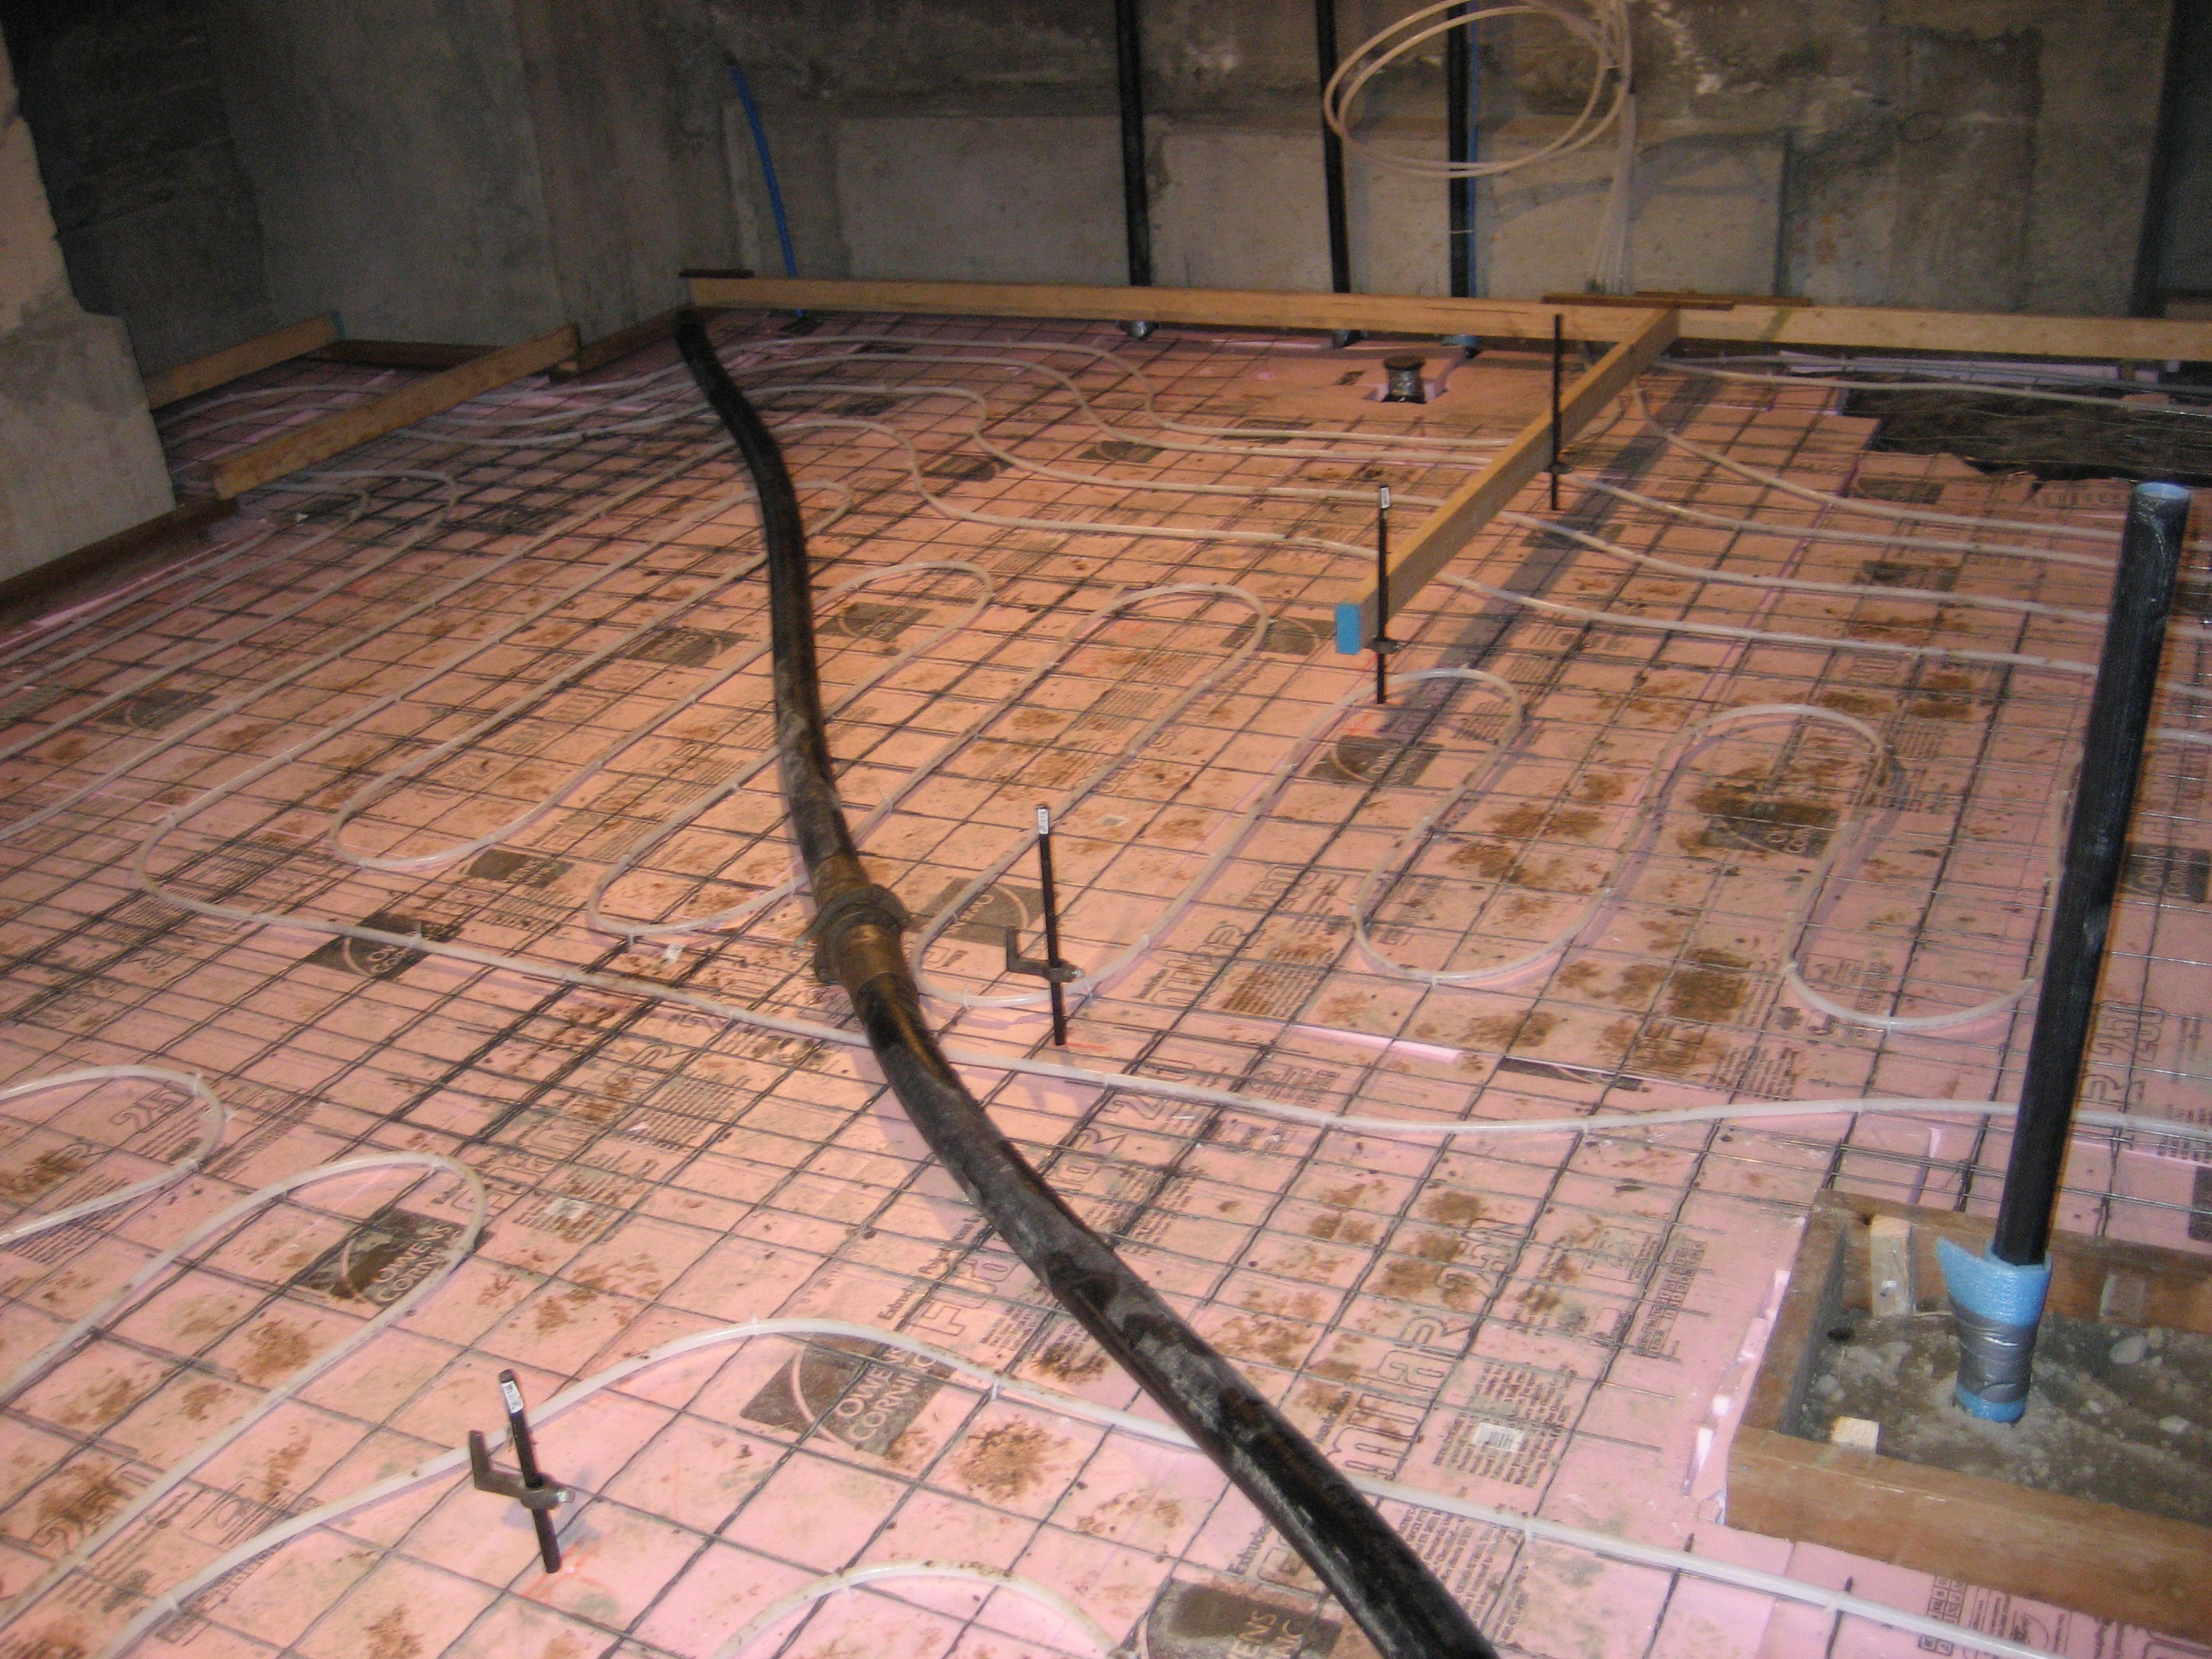 steve s home ventana construction blog ForInsulating Basement Floor Before Pouring